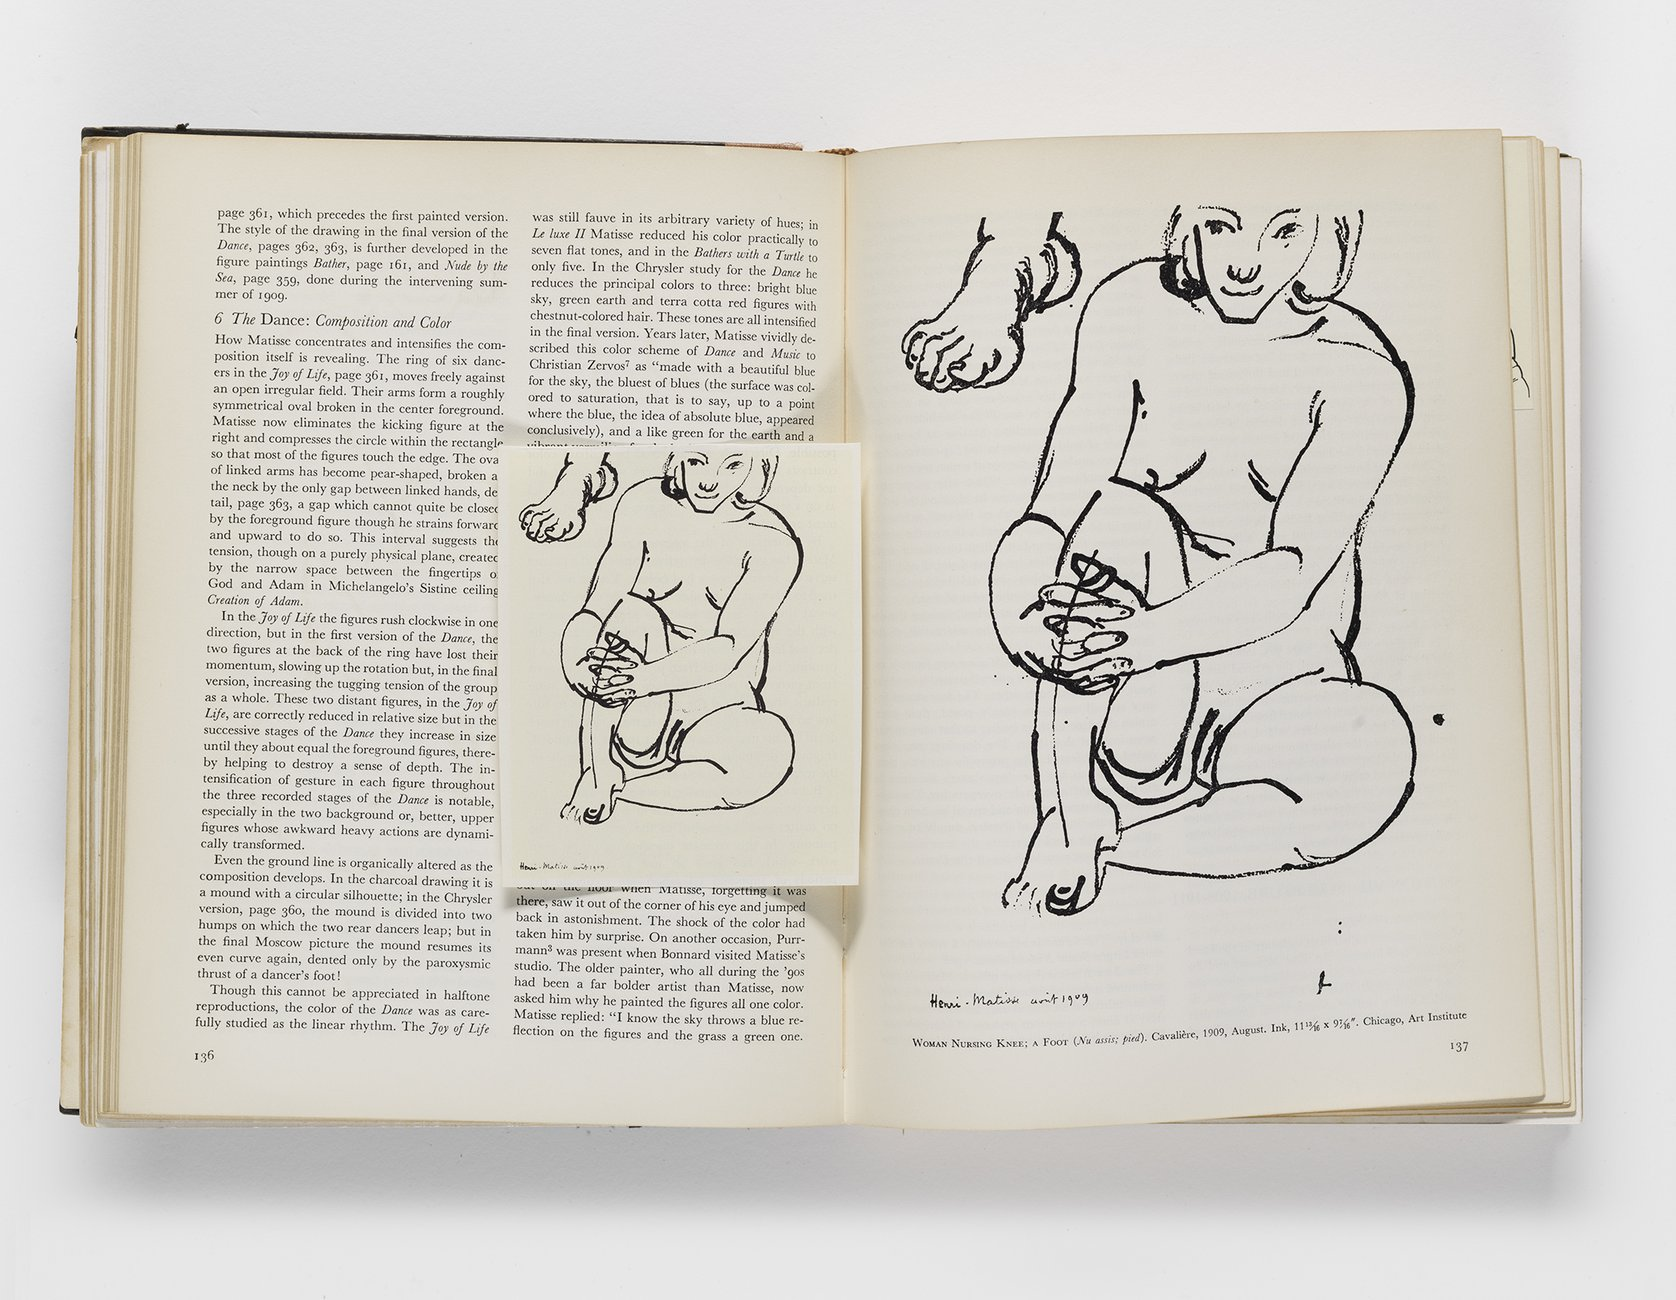 ​Alfred Barr, ​Matisse: His Art and His Public​, 1951 (pp. 136-137)